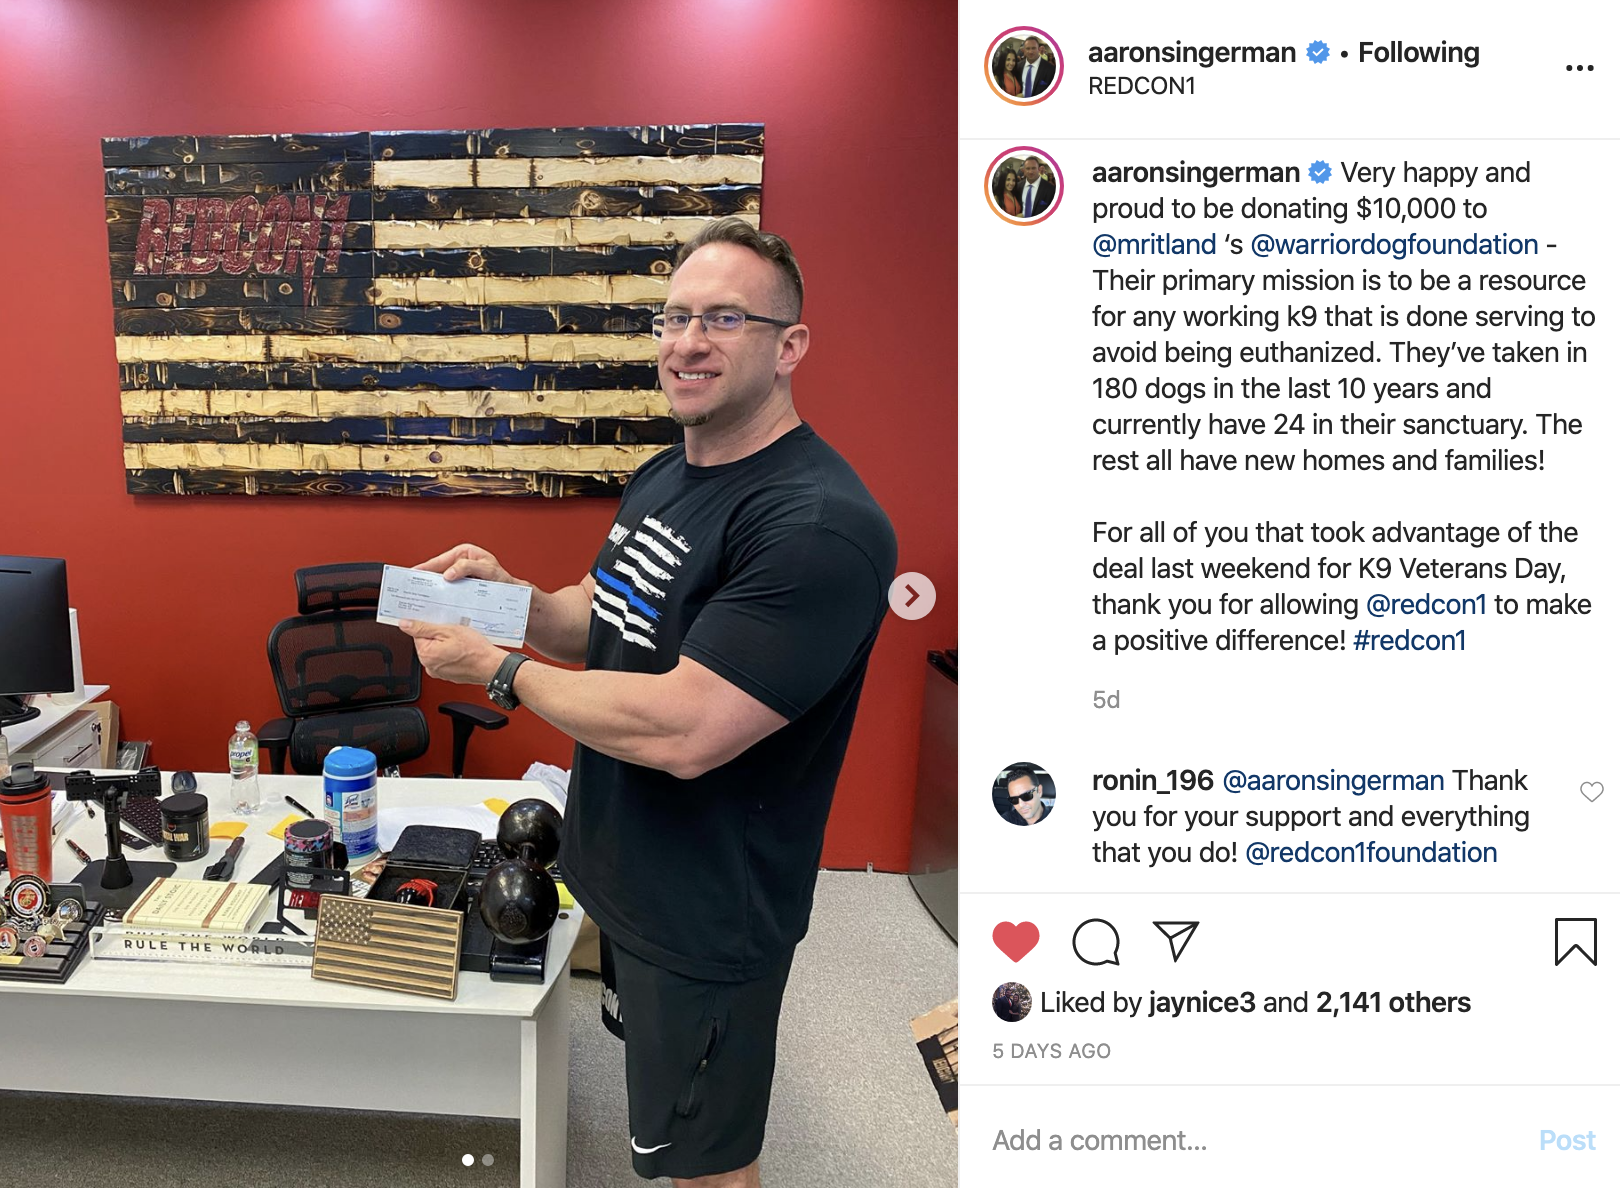 Aaron Singerman's REDCON1 Donates $10,000 To The K9 Warrior Dog Foundation